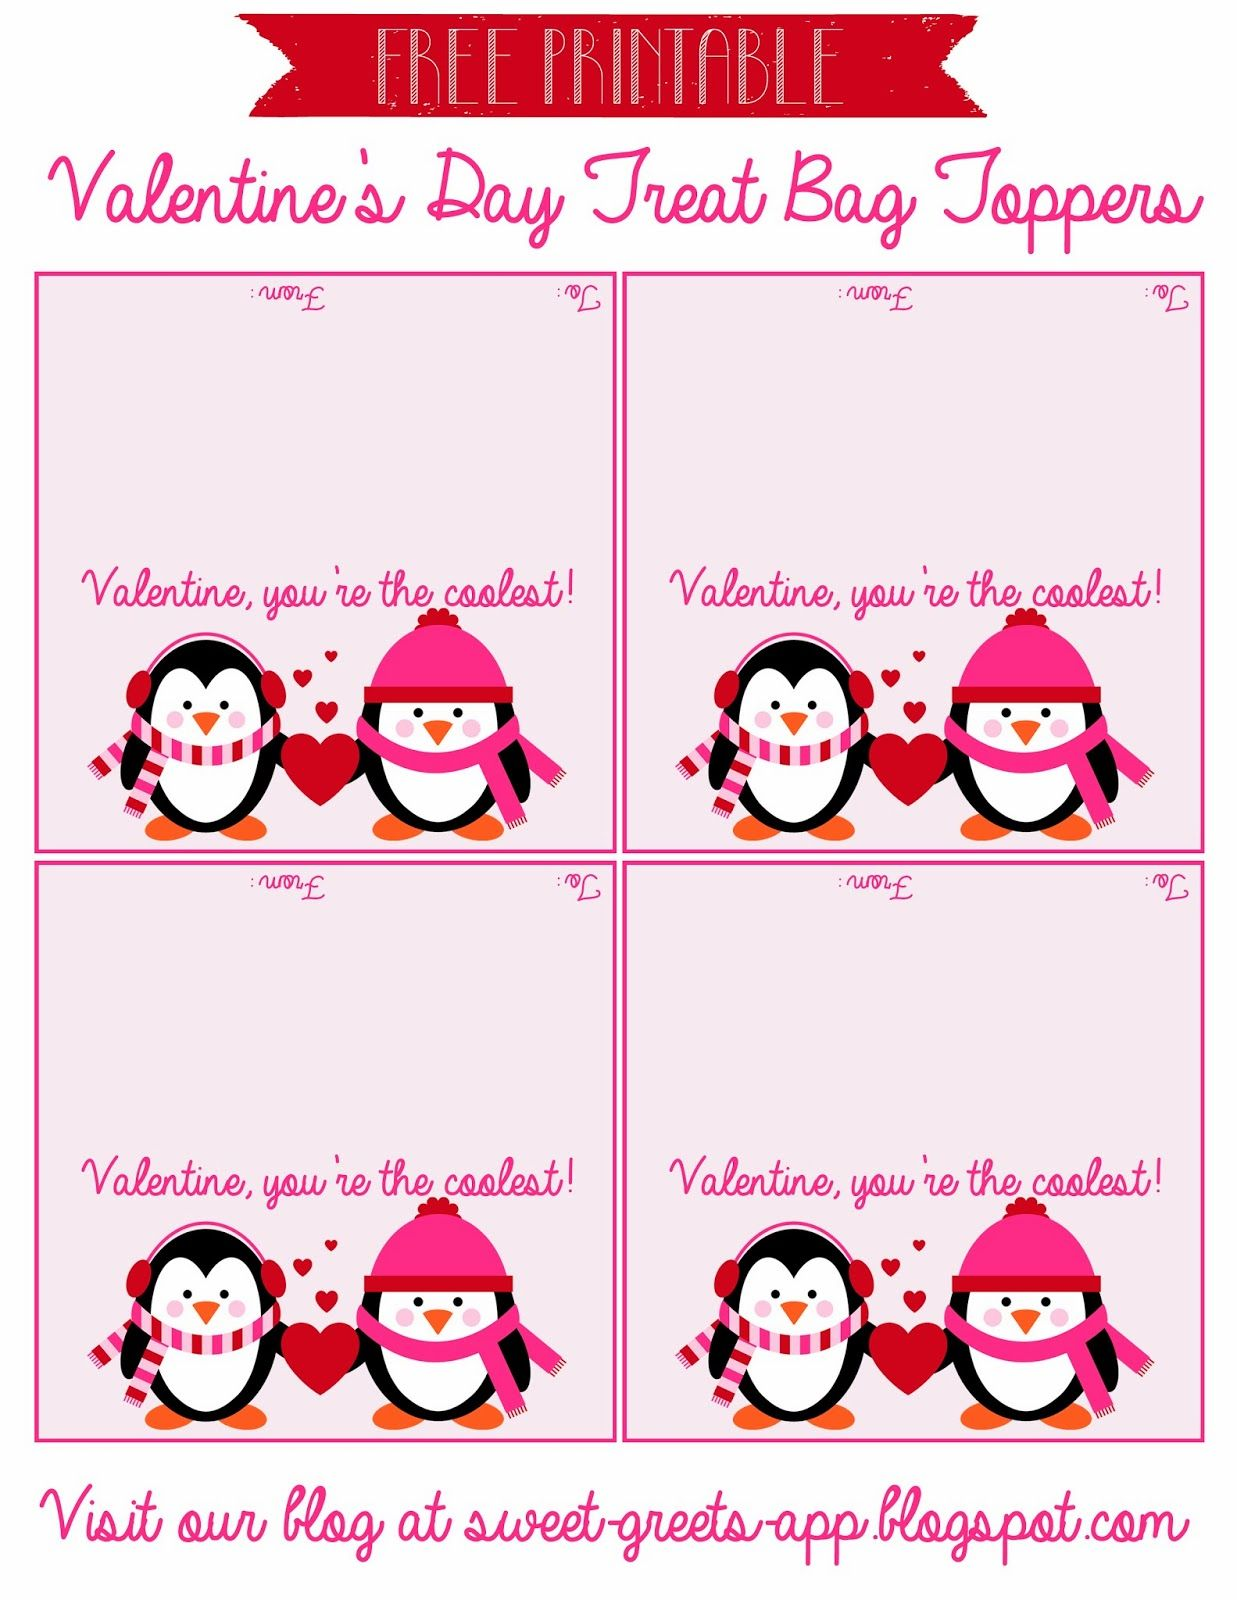 Just Peachy Designs Free Printable Valentine S Day Treat Bag Toppers